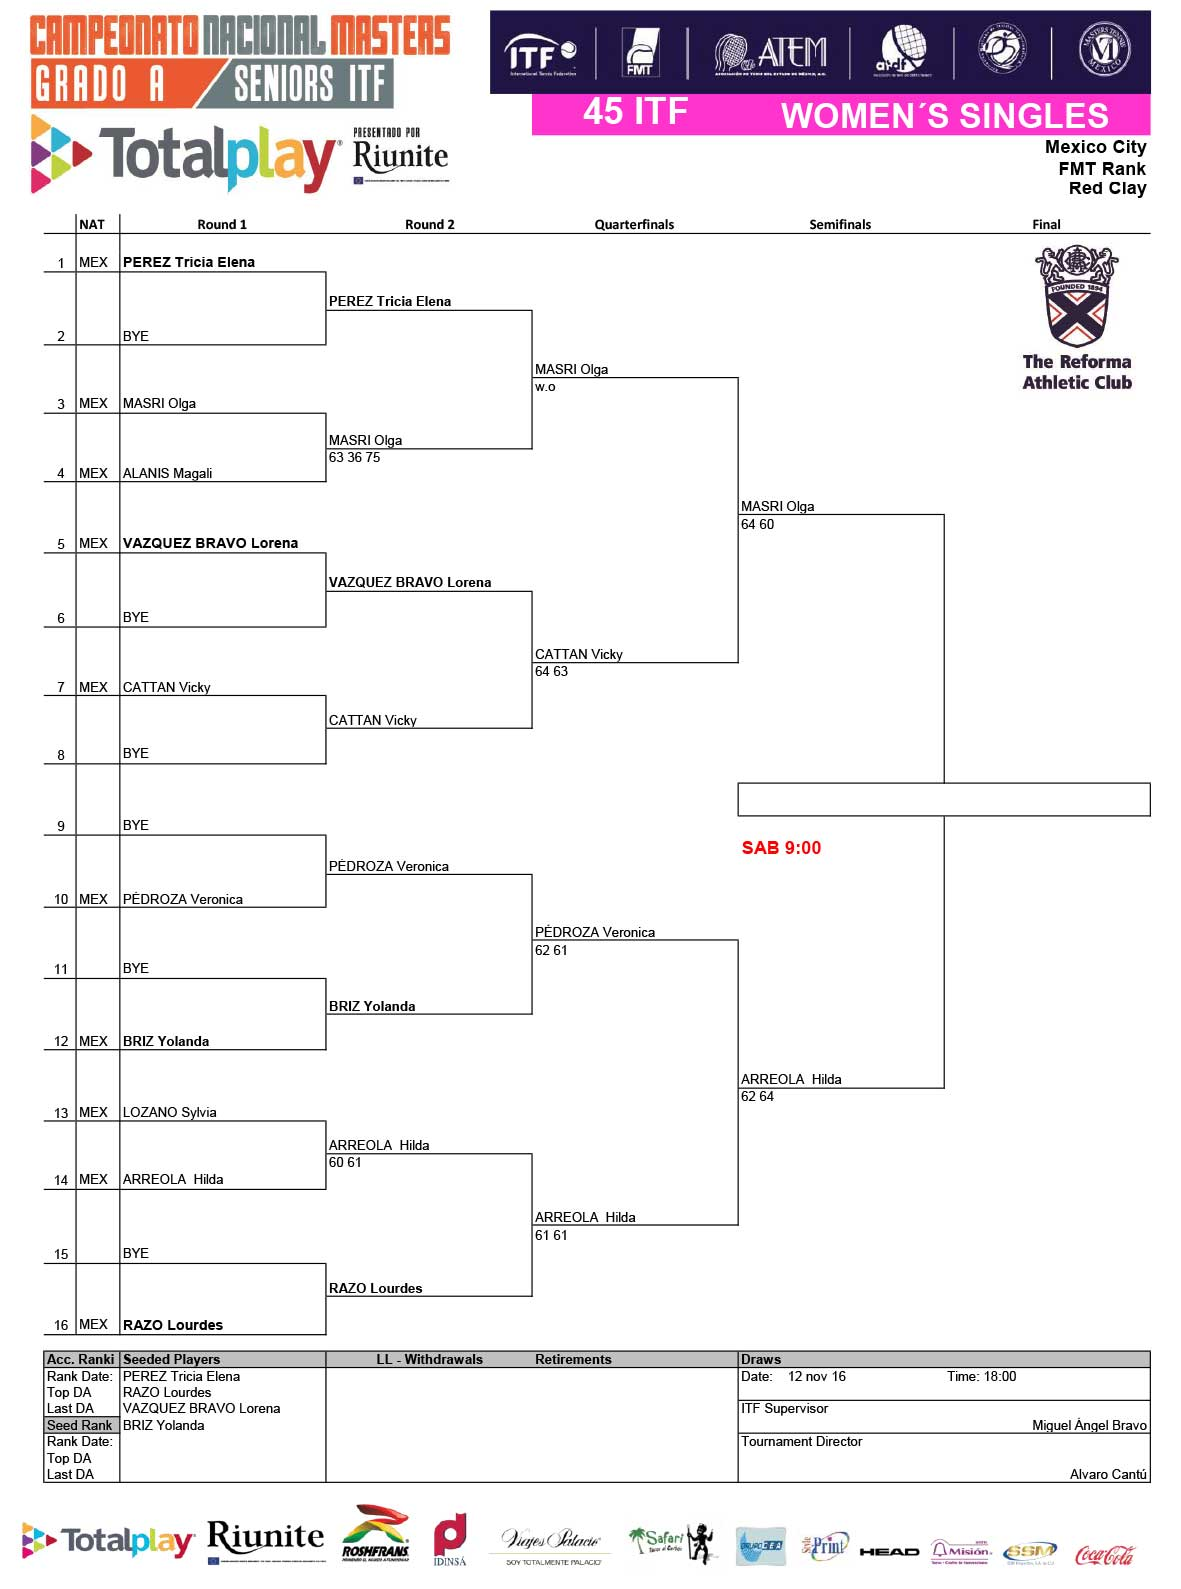 1-draws-itf-2016-copy-13